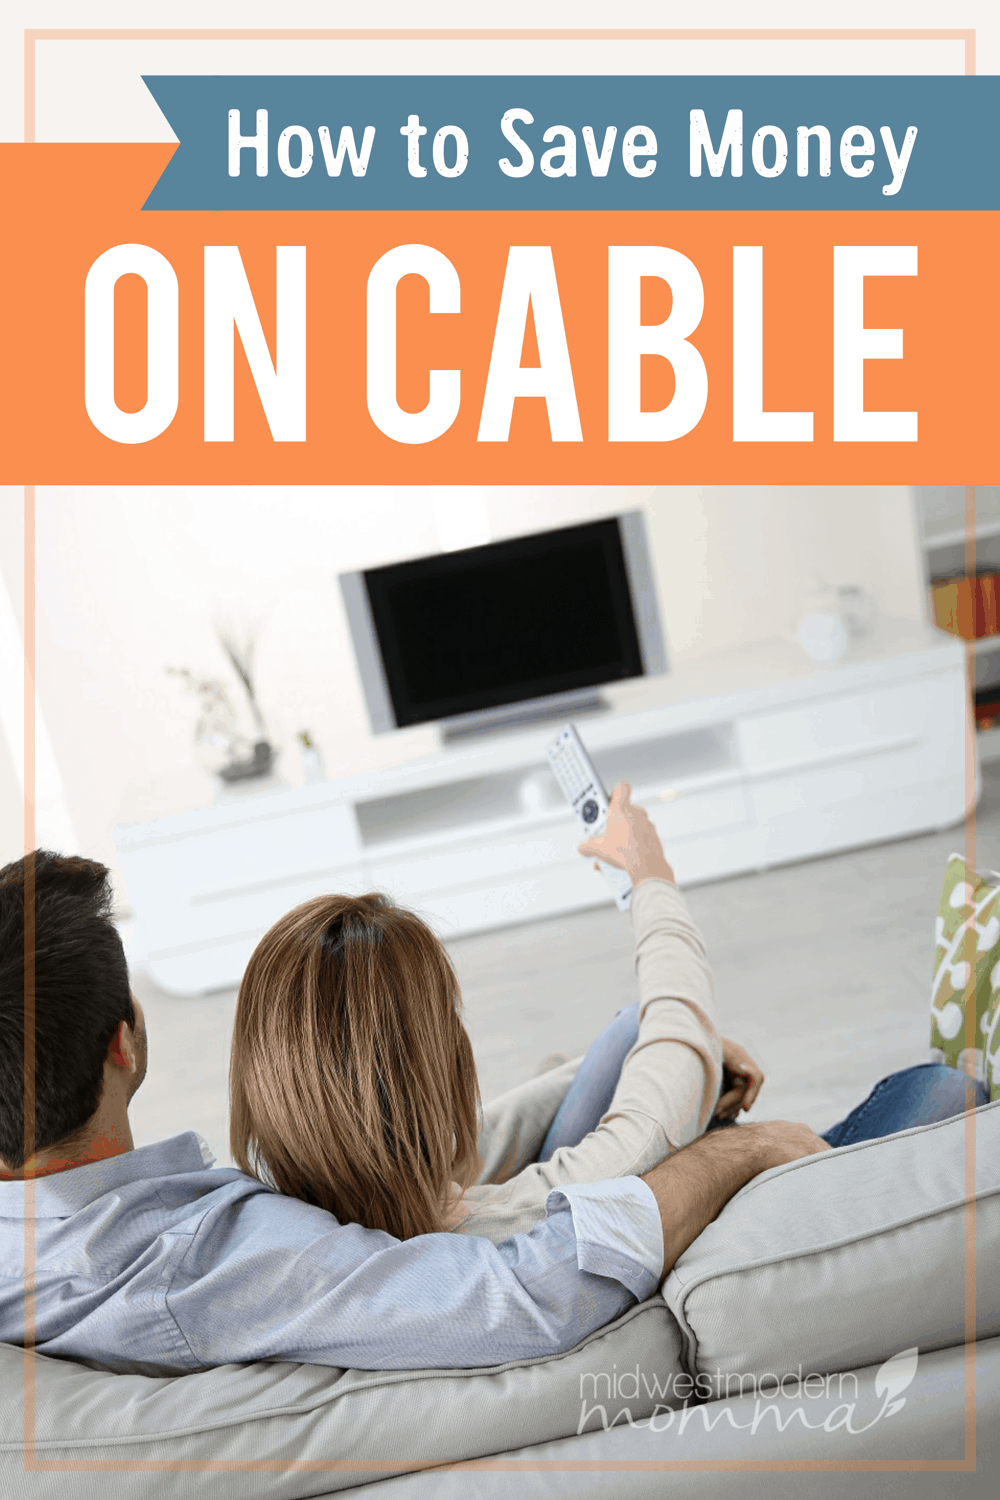 Money Saving Tips to help cut your cable bill!